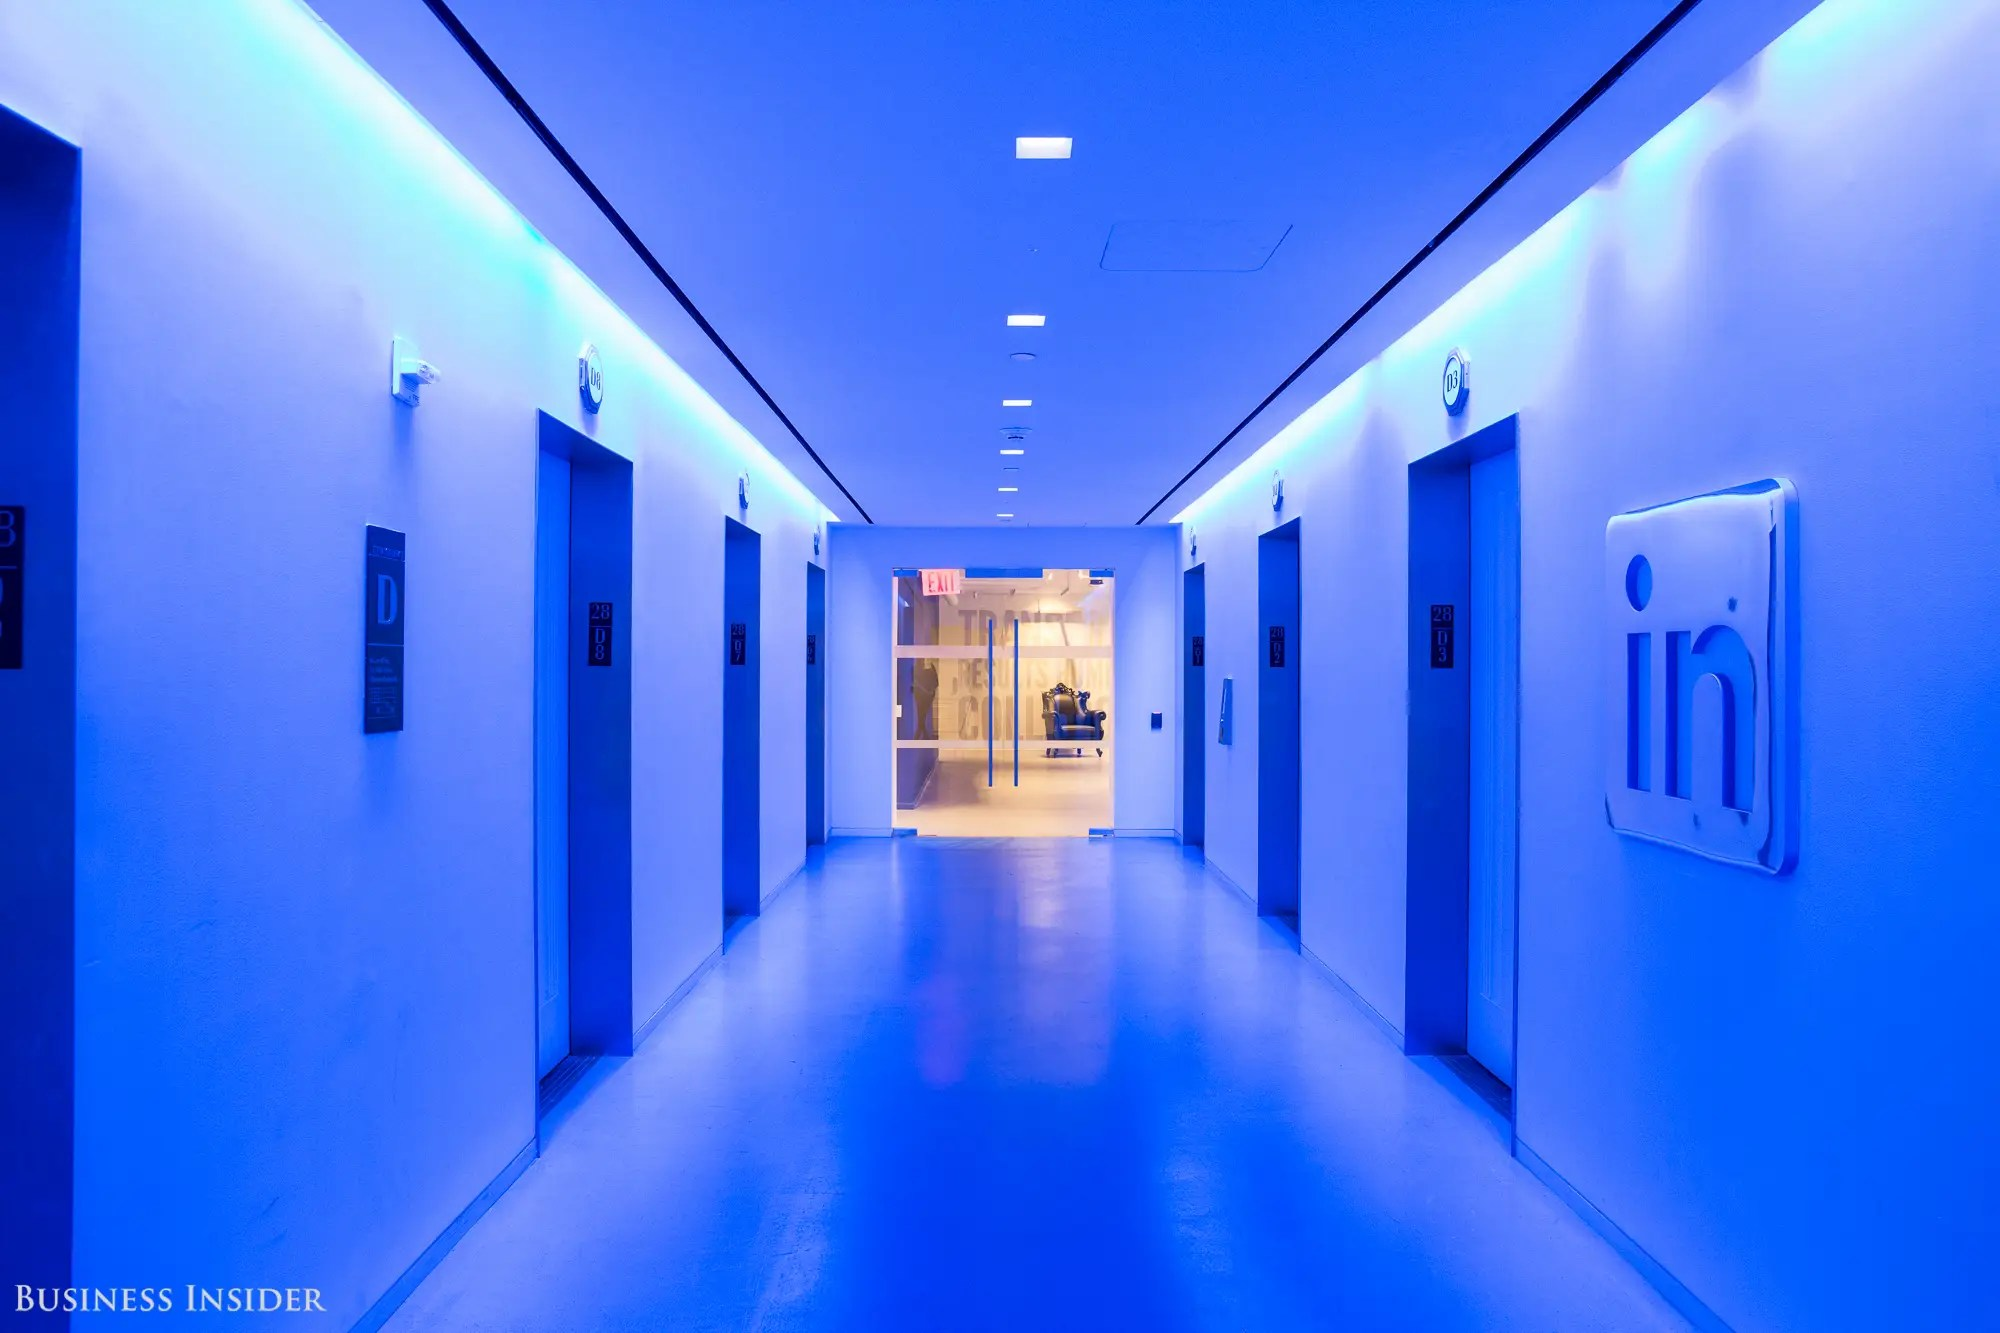 """Next, we visited the 28th floor. The elevator doors opened to a bright blue, almost futuristic central lobby. It was one of the most striking locations of all. """"We wanted people to feel like they're arriving at a destination,"""" Campofelice says."""